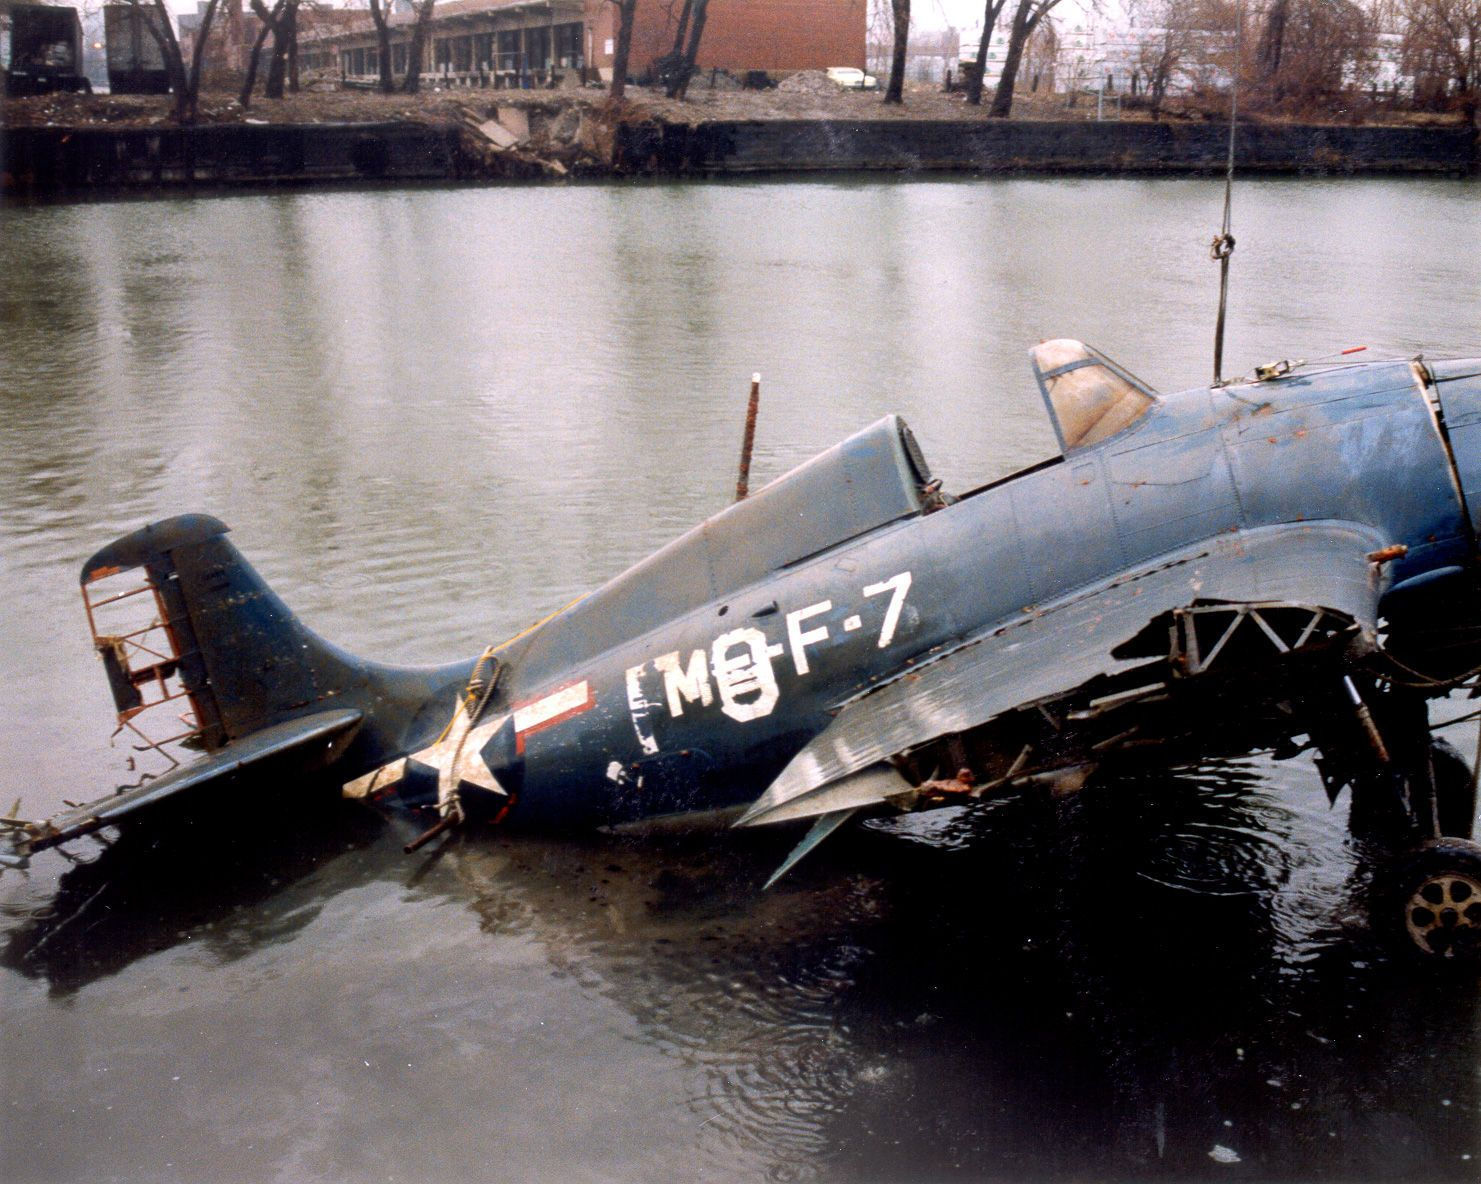 F4F Wildcat recovered after sitting on bottom of Lake Michigan for about 50 years.